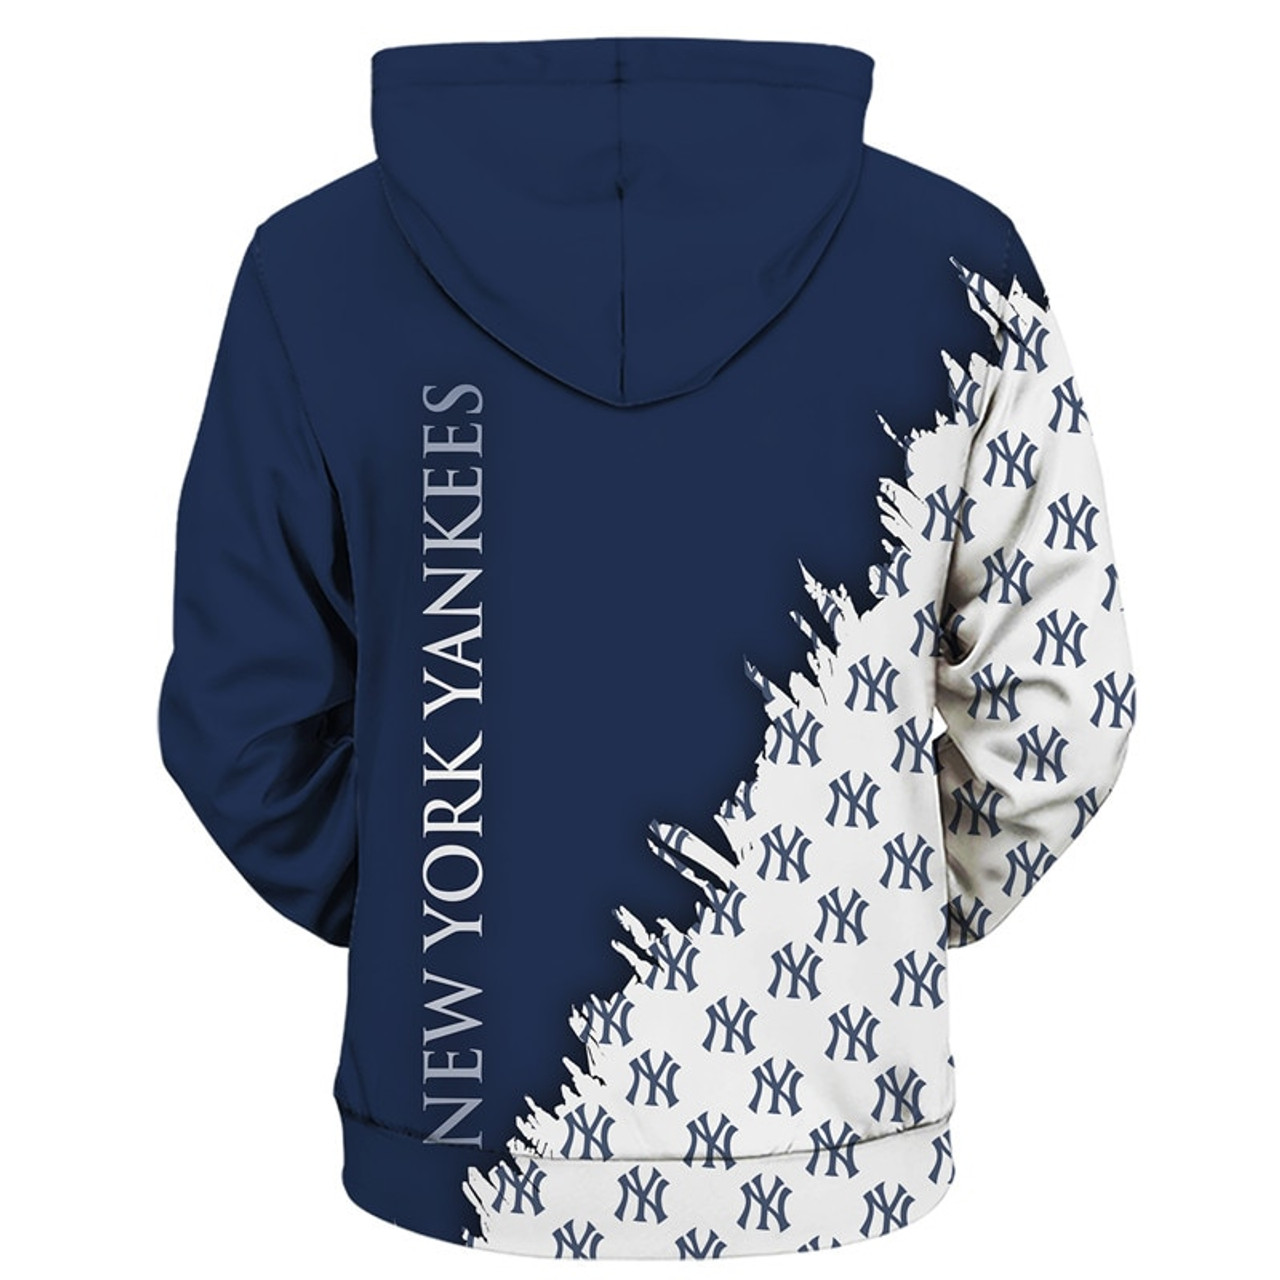 **(OFFICIALLY-LICENSED-M.L.B. NEW-YORK-YANKEES-TEAM-HOODIES/NICE-CUSTOM-DETAILED-3D-GRAPHIC-PRINTED/PREMIUM-ALL-OVER-DOUBLE-SIDED-PRINT/OFFICIAL-YANKEES-TEAM-COLORS & CLASSIC-YANKEES-BASEBALL-3D-GRAPHIC-LOGOS/PREMIUM-PULLOVER-POCKET-M.L.B.HOODIES)**